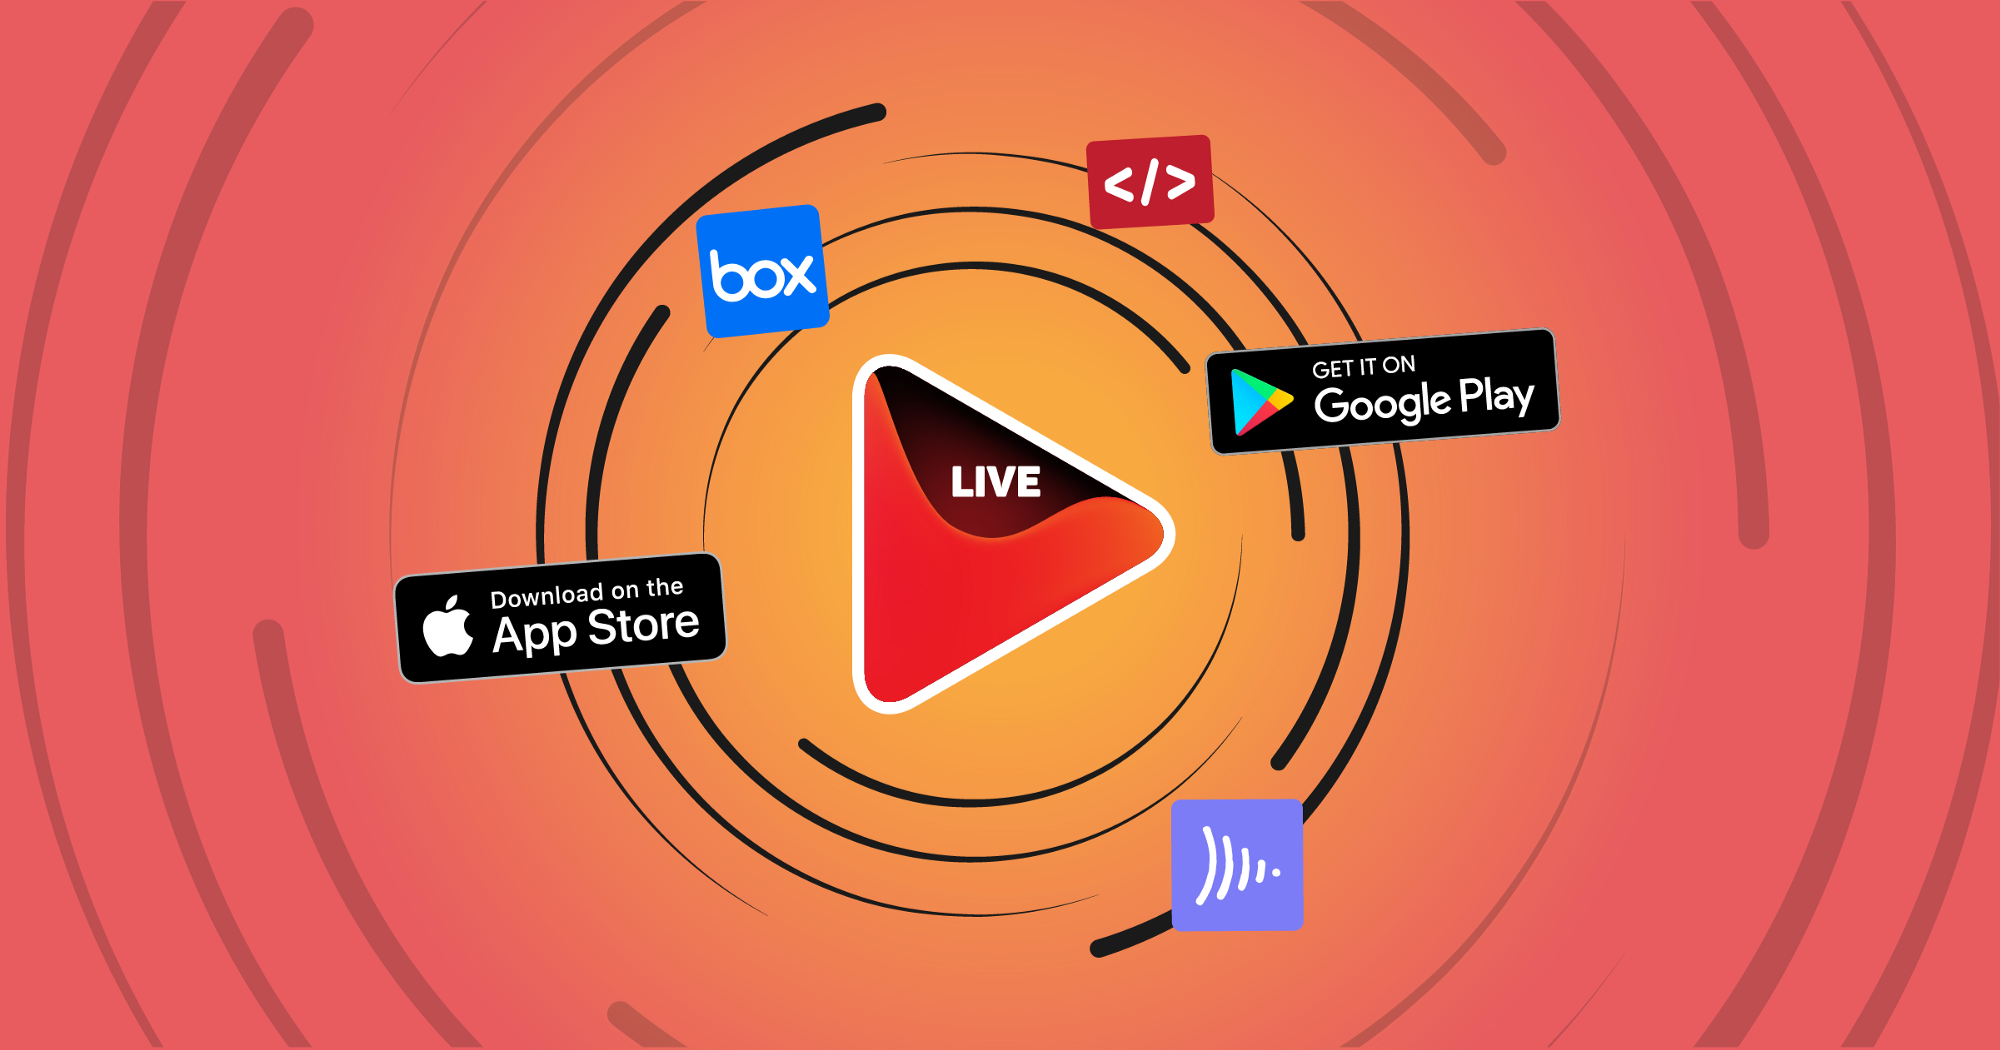 OneStream Live new version, embed player, box storage, frame.io, goole play, app store, onestream android app, ios, live stream